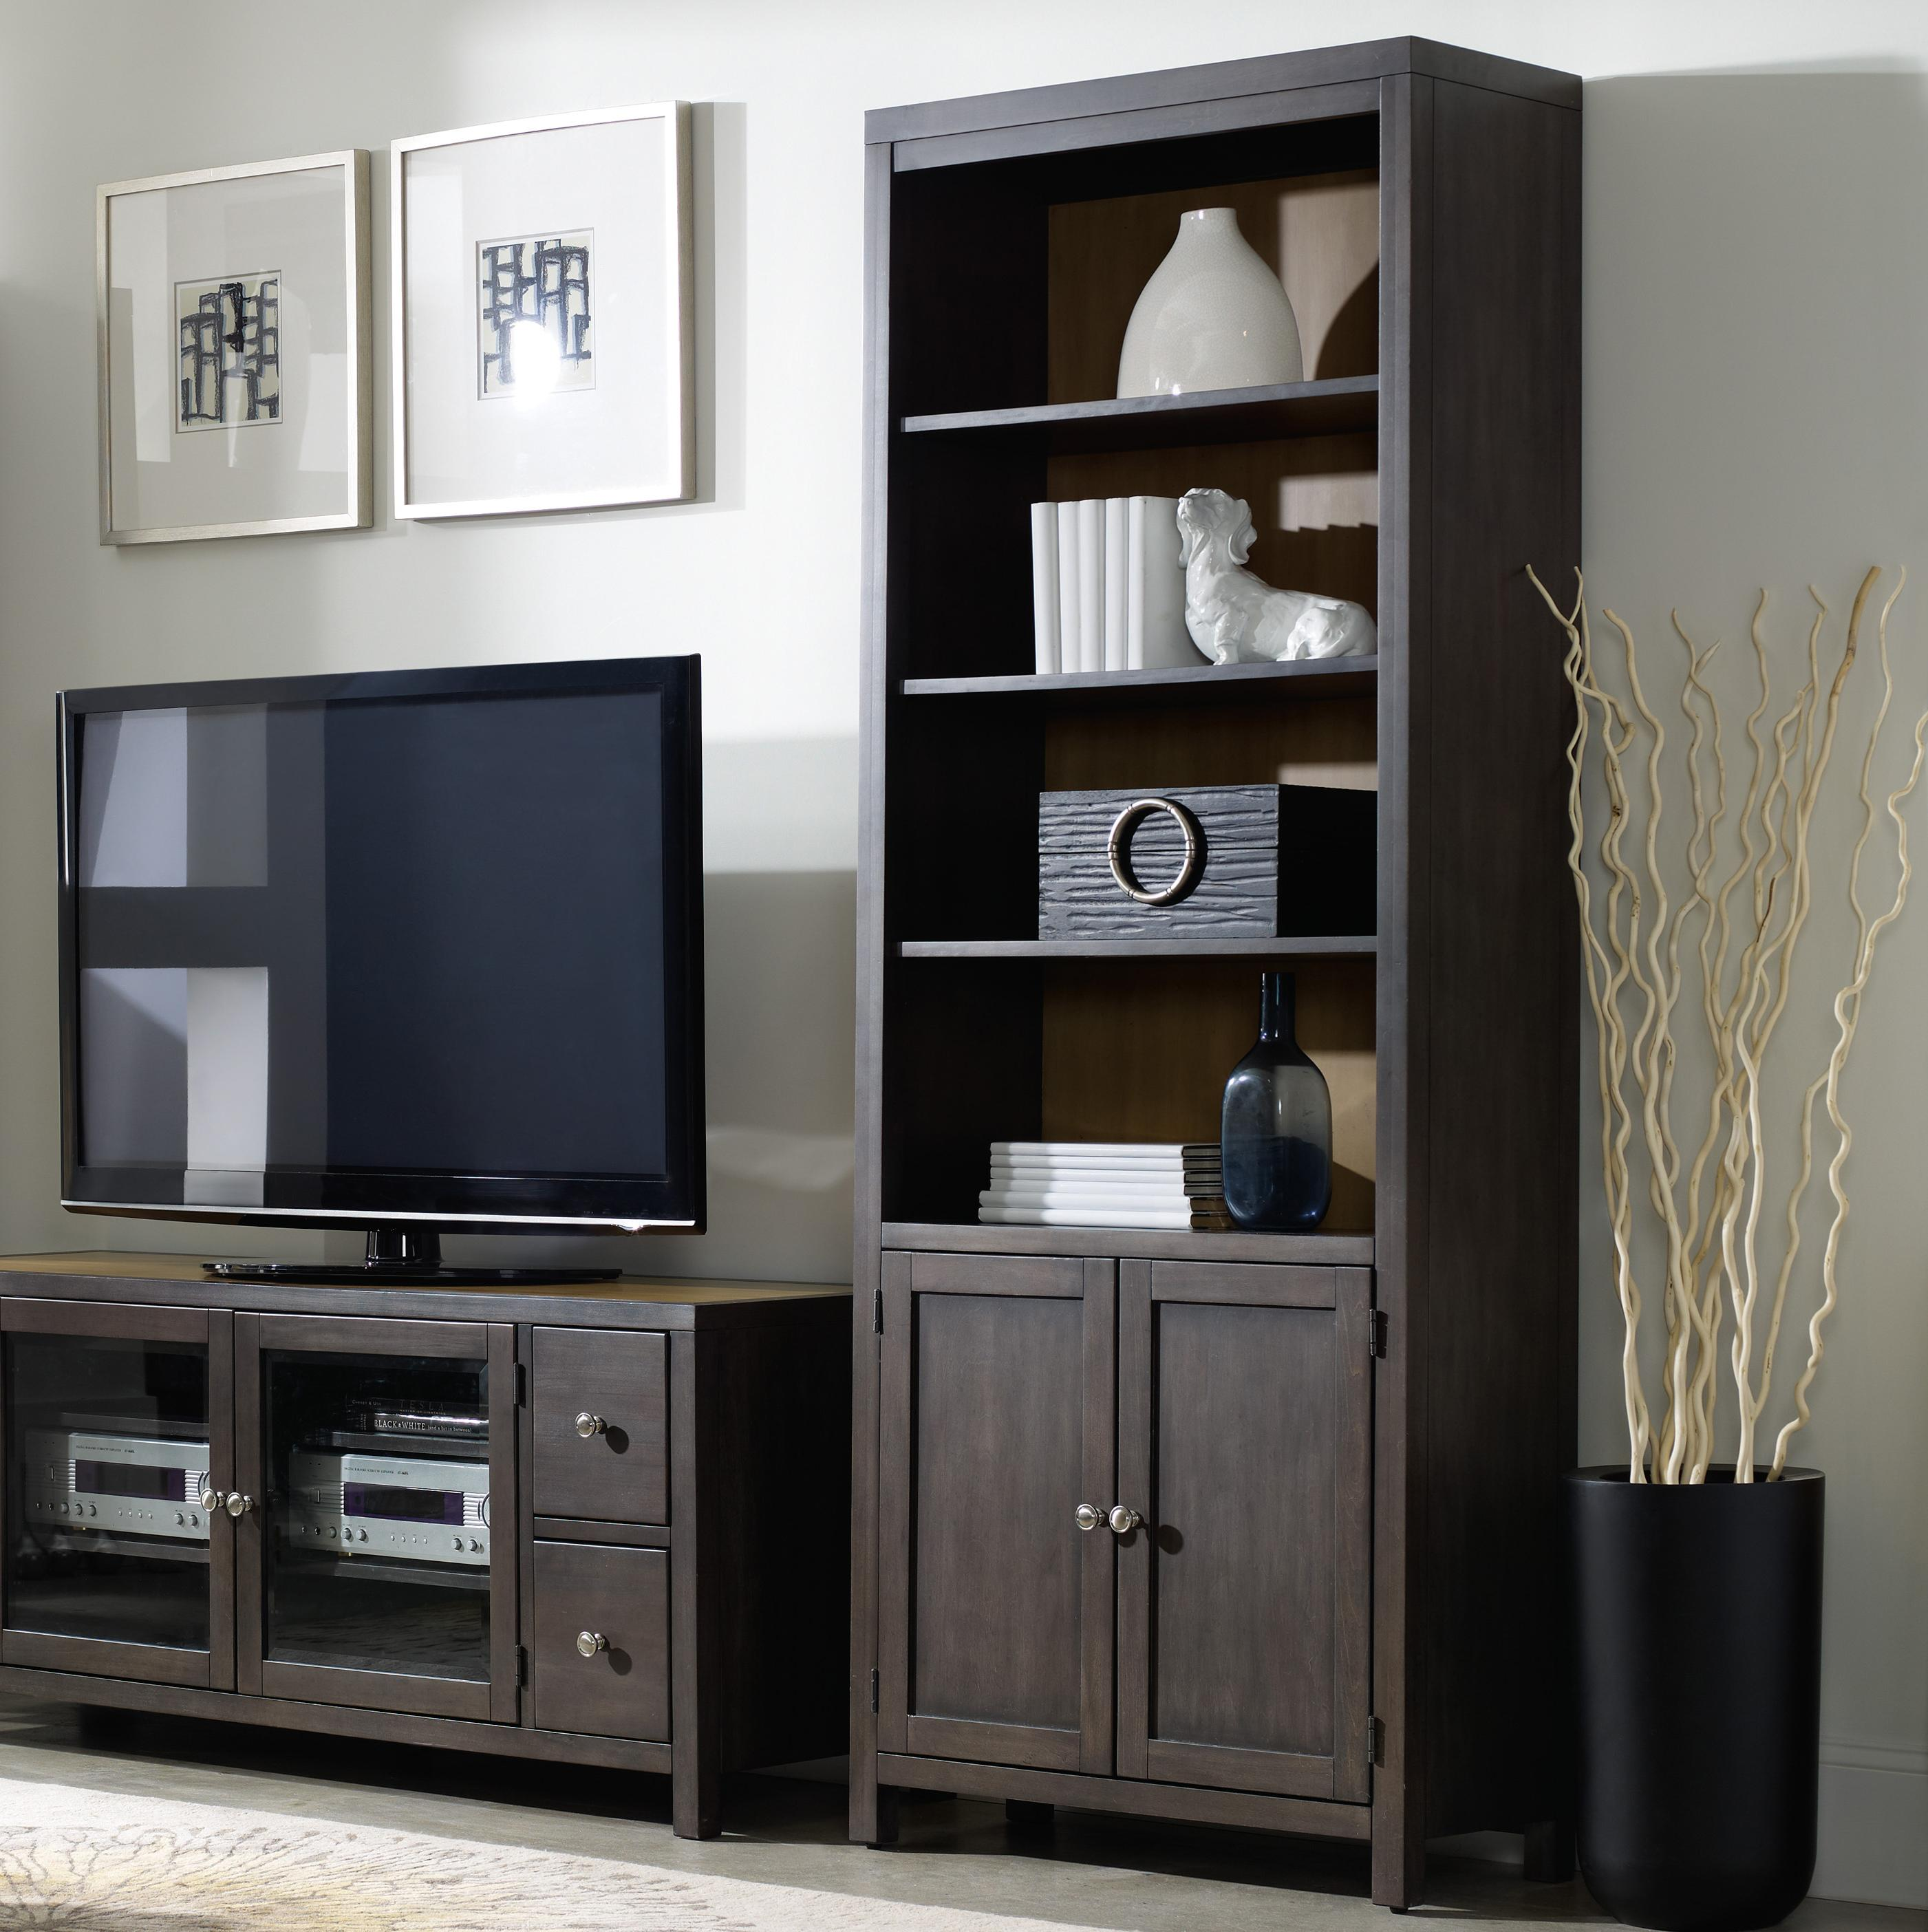 Hooker Furniture South Park Bunching Bookcase - Item Number: 5078-10445